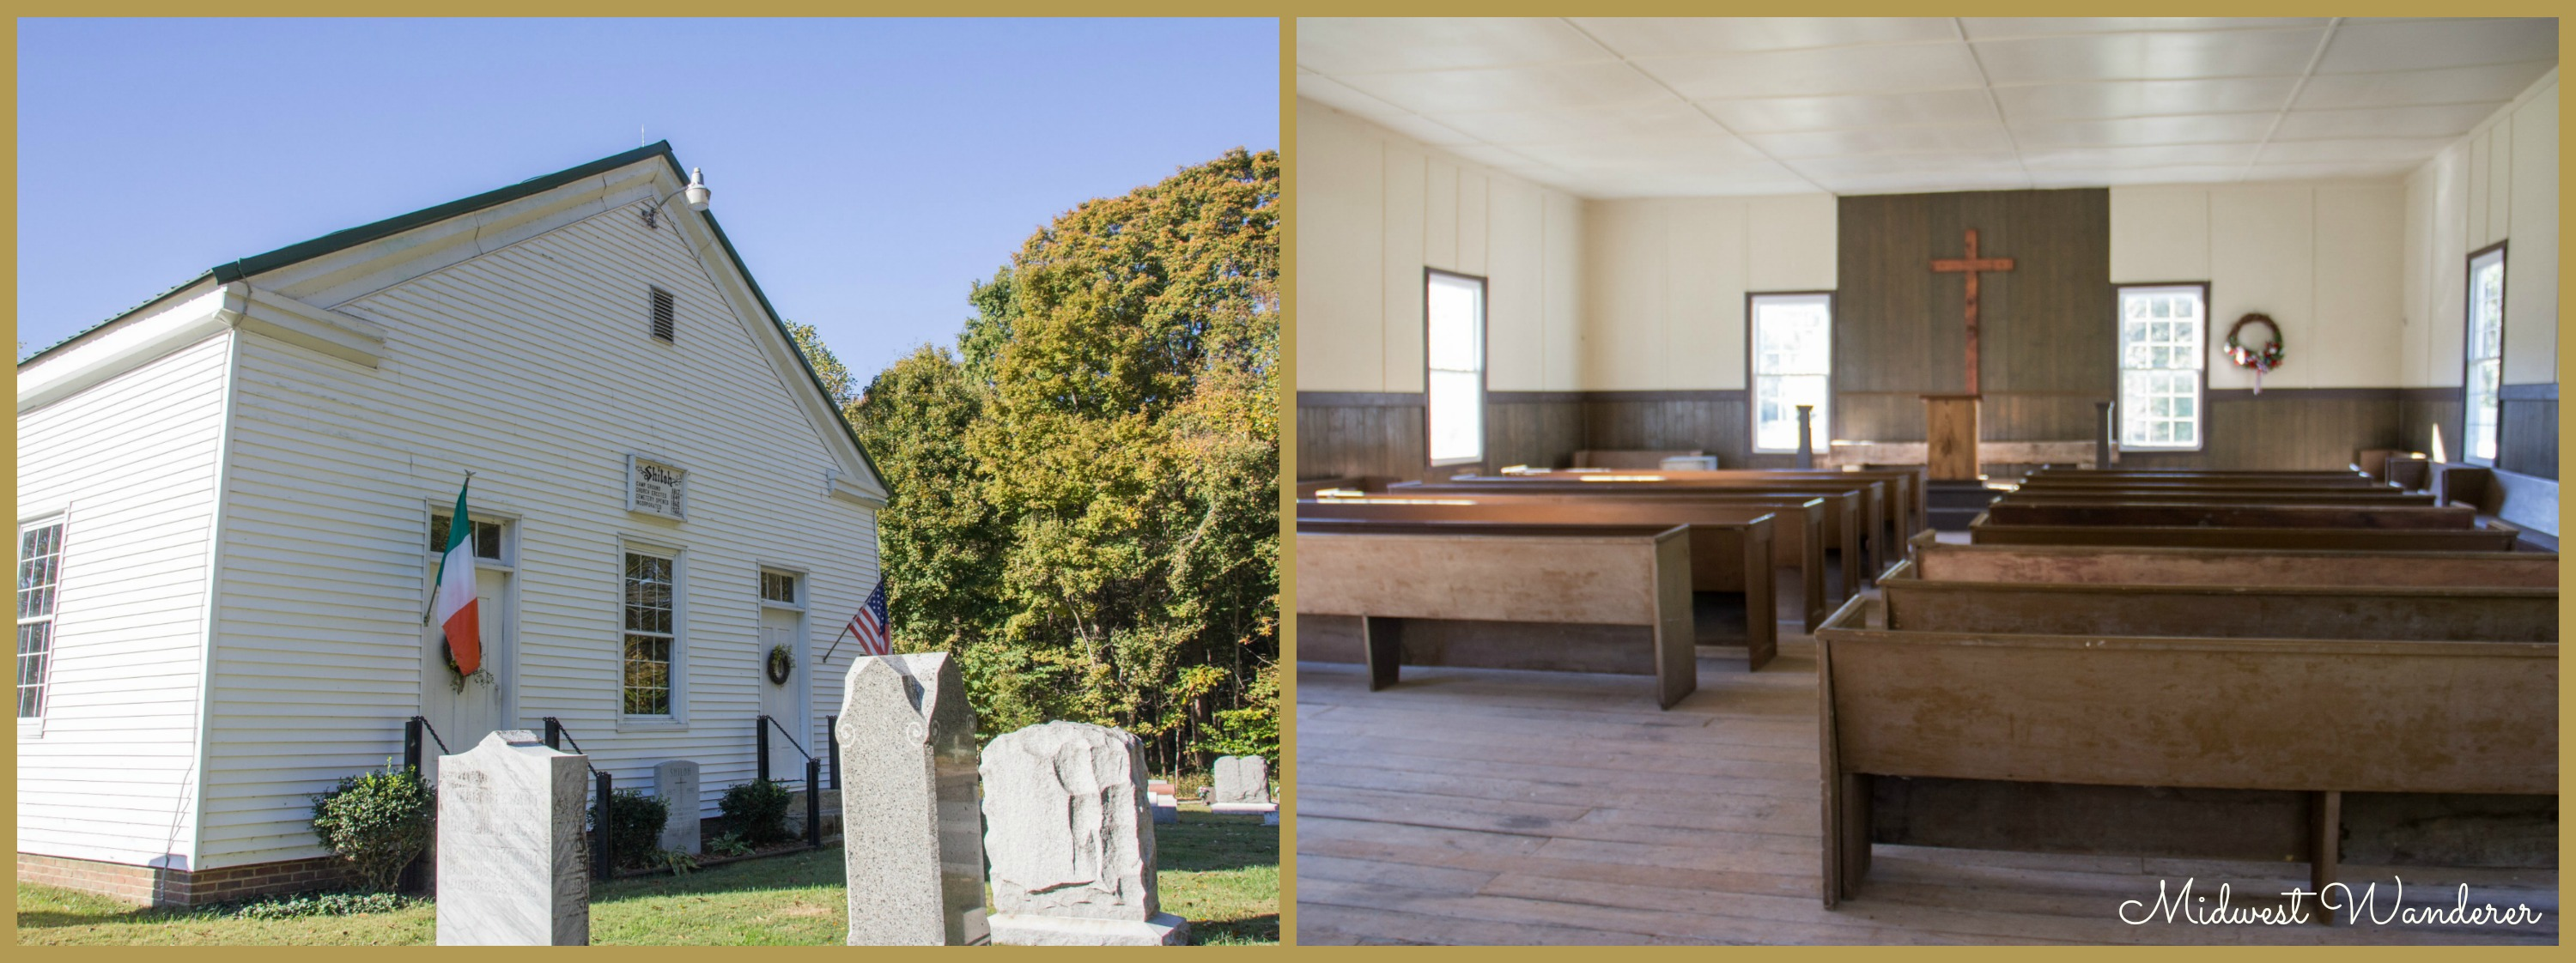 Trail of Faith - Shiloh Meeting House